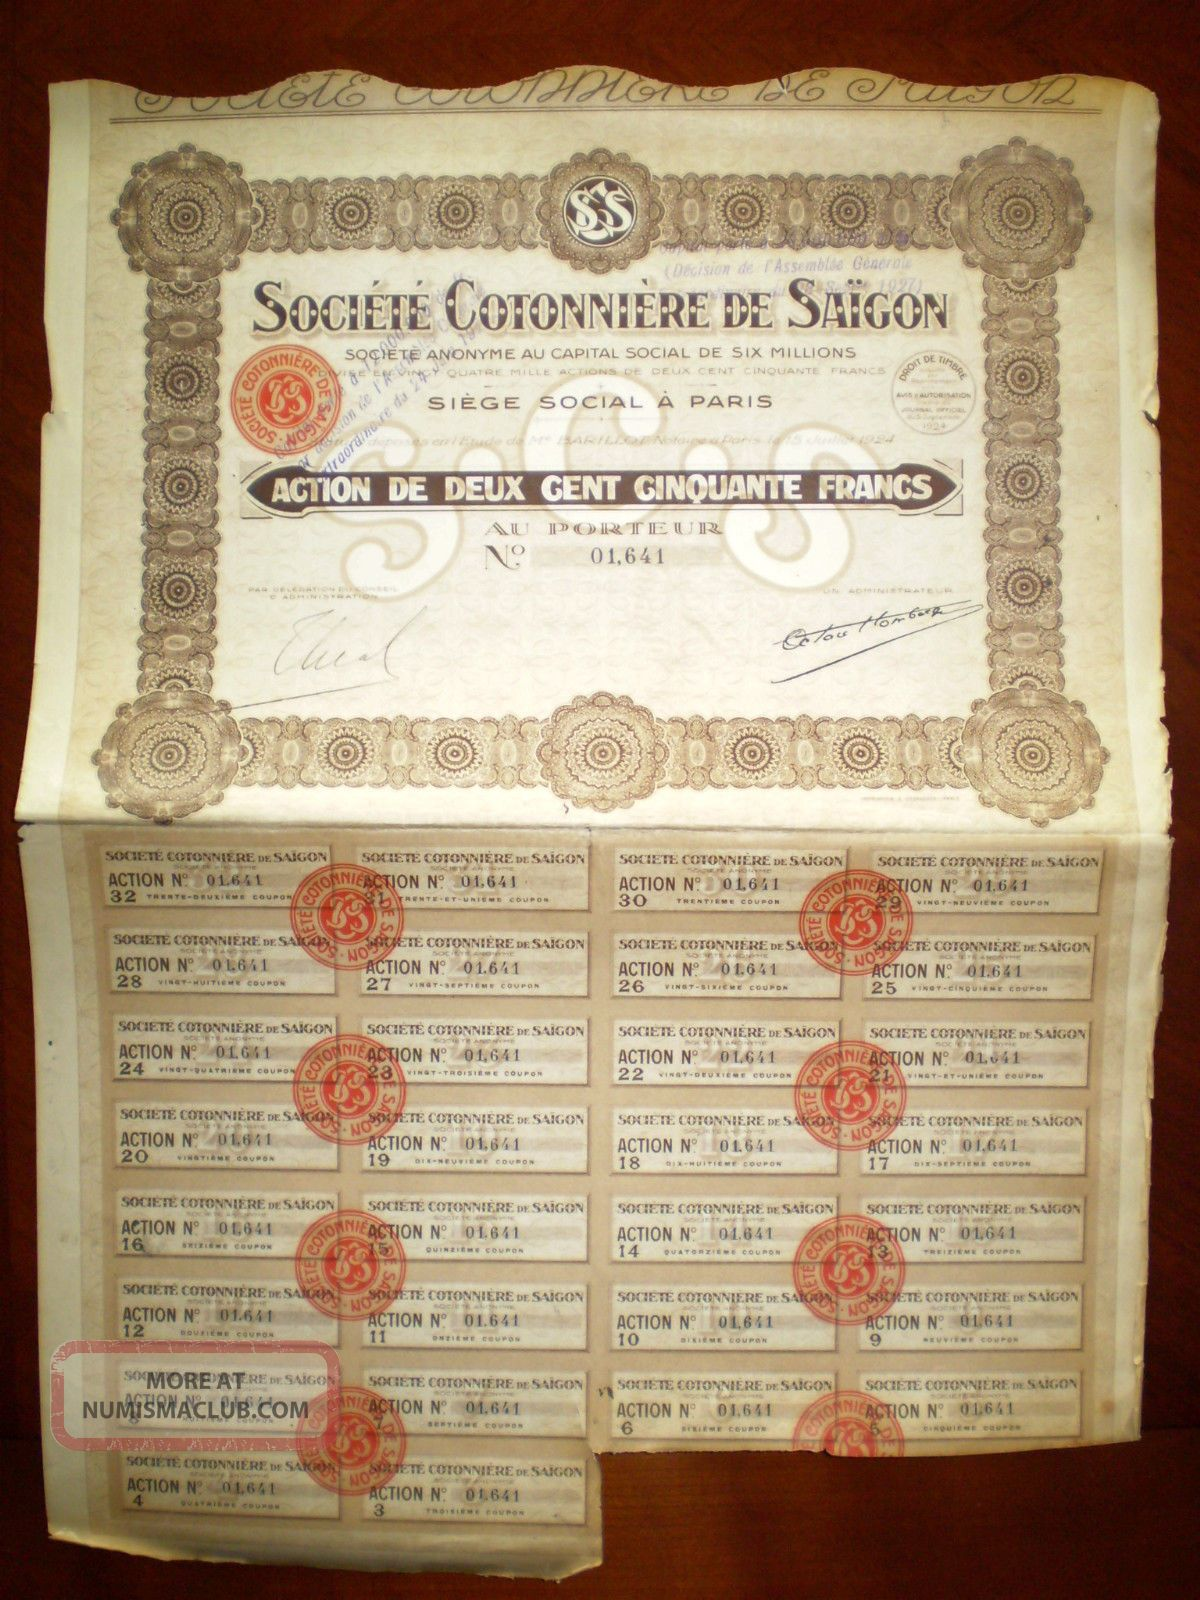 Société Cotonnière De Saigon,  Share Certificate.  Viet Nam 1926 Vf/ef World photo